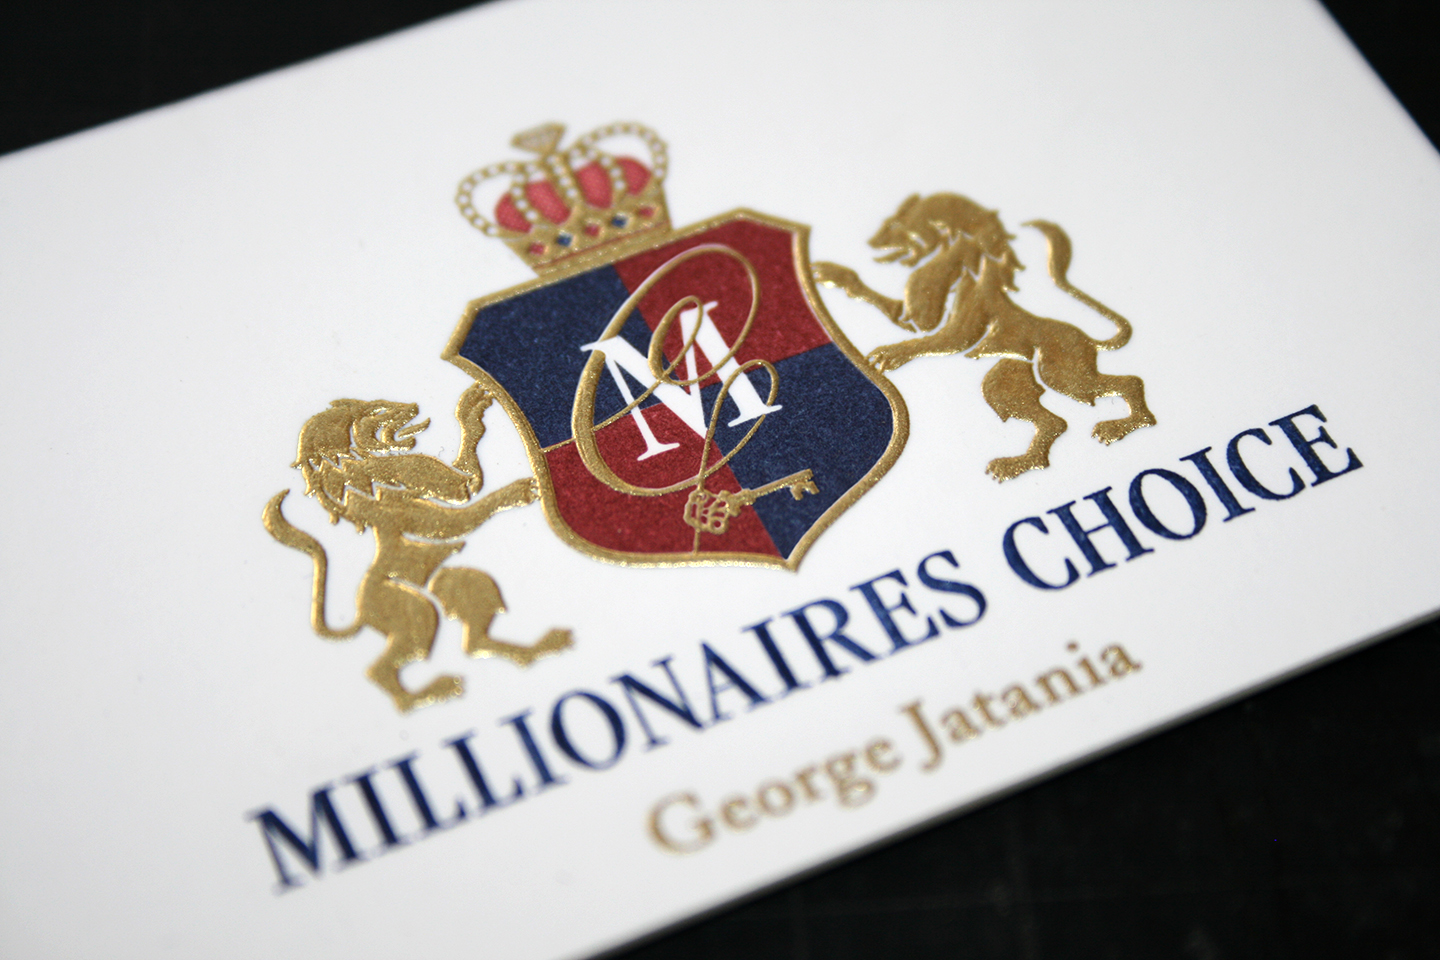 millionaires choice business card